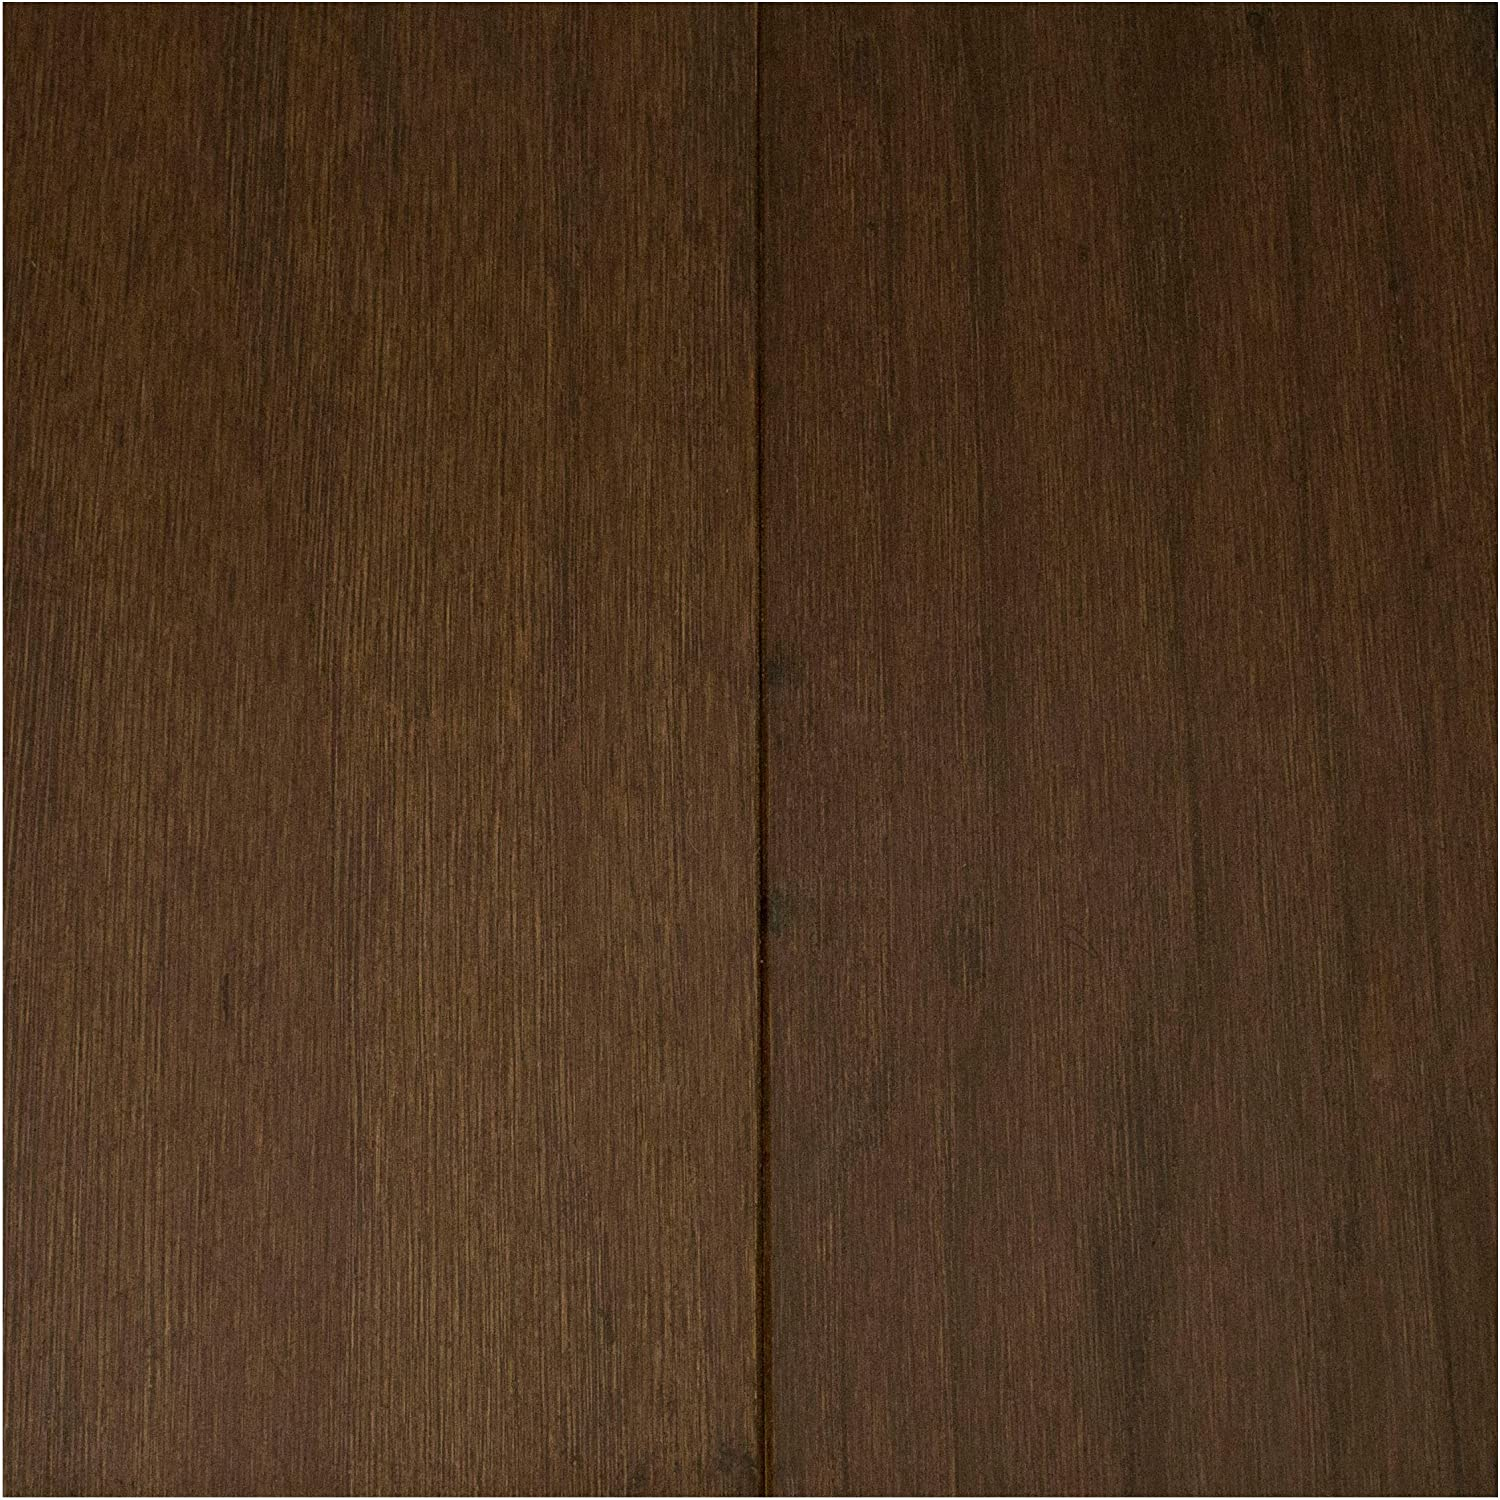 Moldings Online 3774578002 78x 2x 0.63 Mohawk Natural Hickory Collection 78 Rockford T-Mold Length